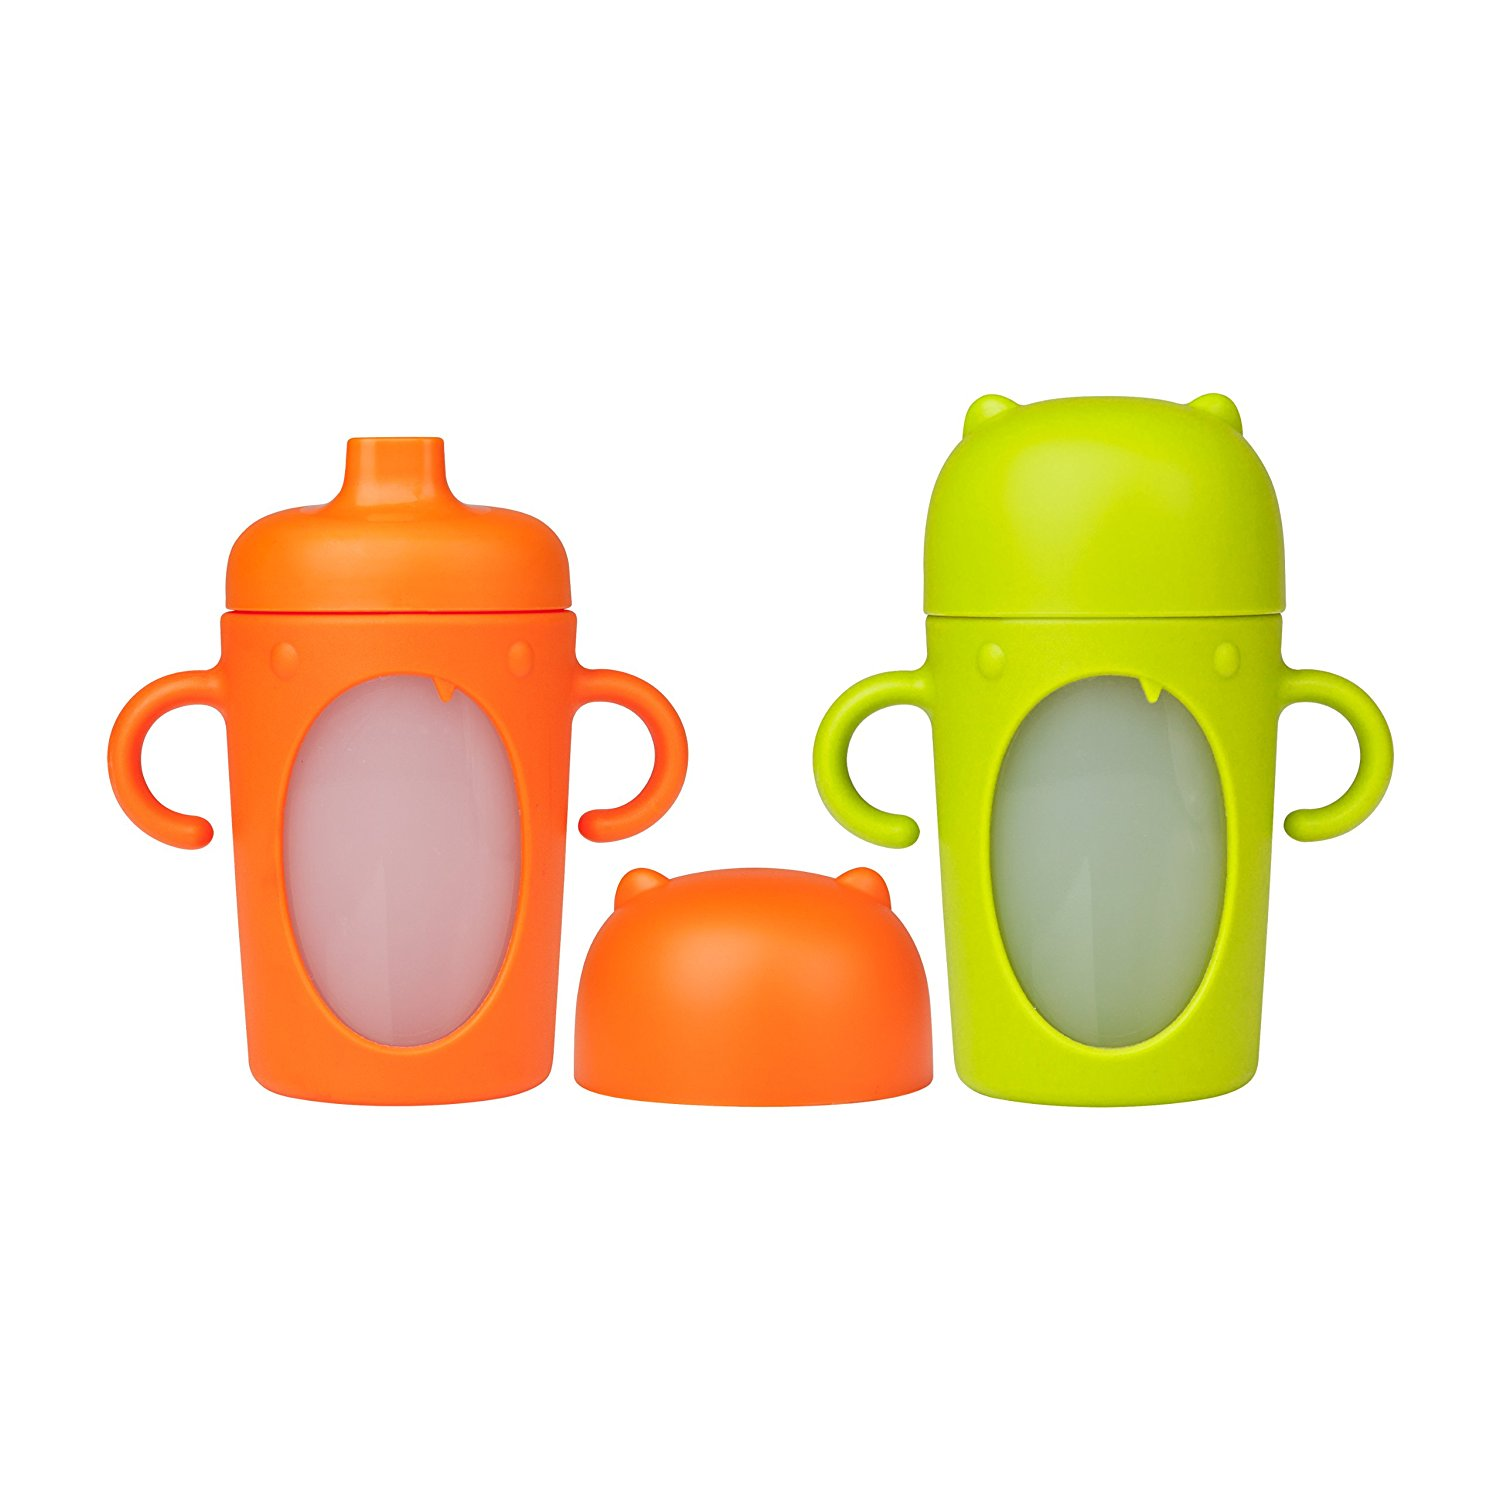 Sippy Cup Clipart Free Download Best Sippy Cup Clipart